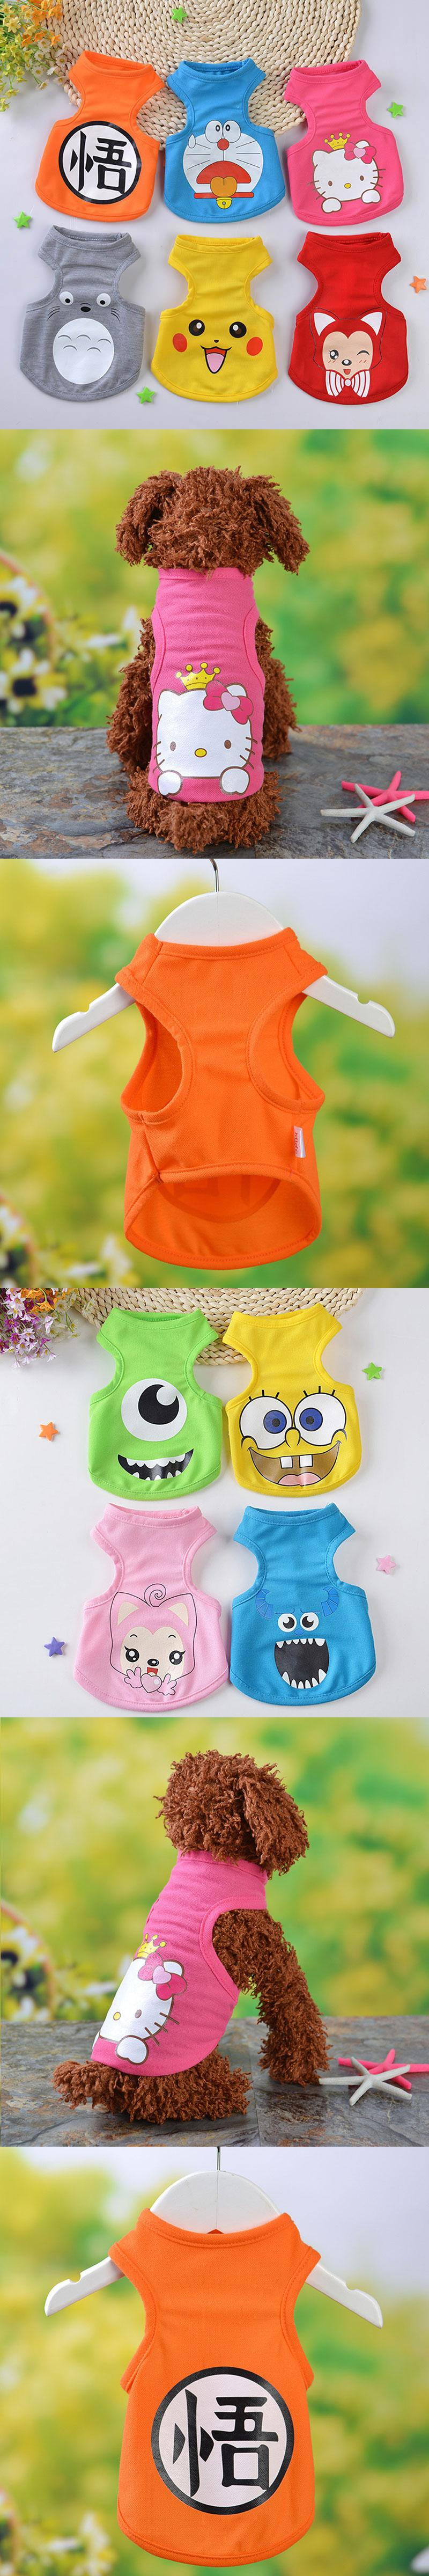 FopPet 2017 New Summer Cartoon Dog Pet Vest High Quality Cotton Clothes Cute  Dogs Vest Shirts